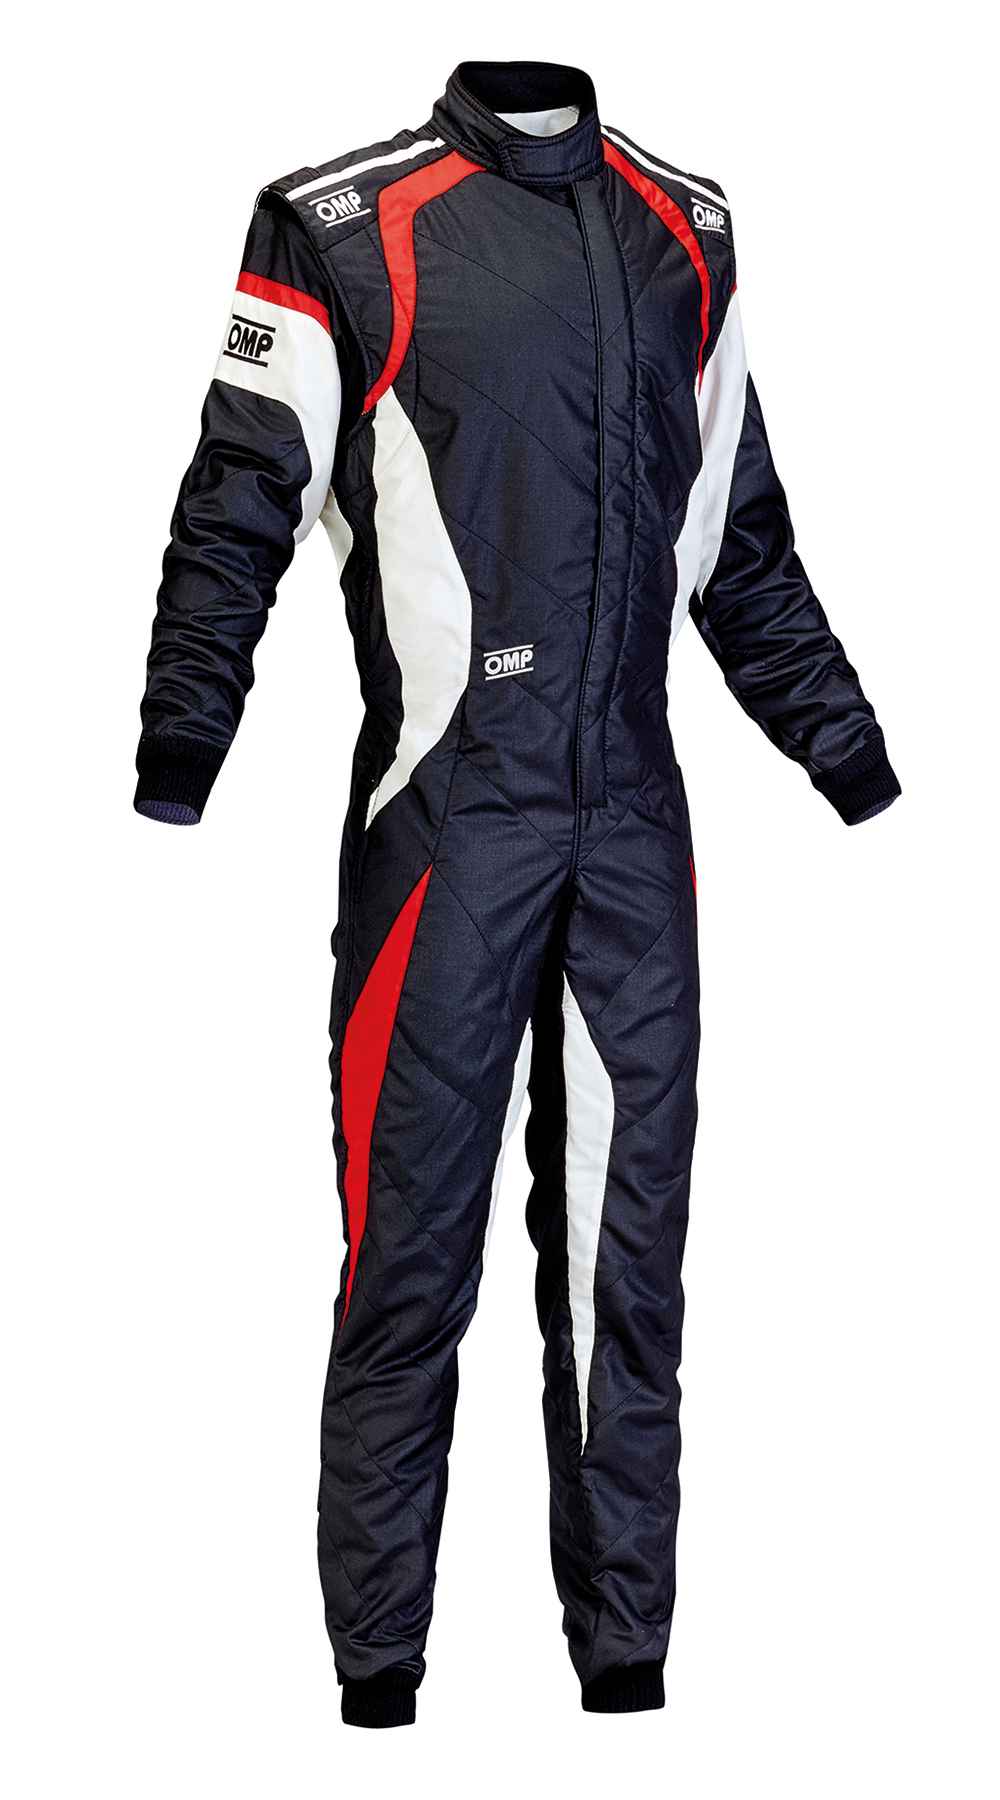 Coil Springs For Sale >> OMP One Evo Race Suit | OMP IA018512076 Racing Overalls | OMP One Evo Fireproof Overalls ...